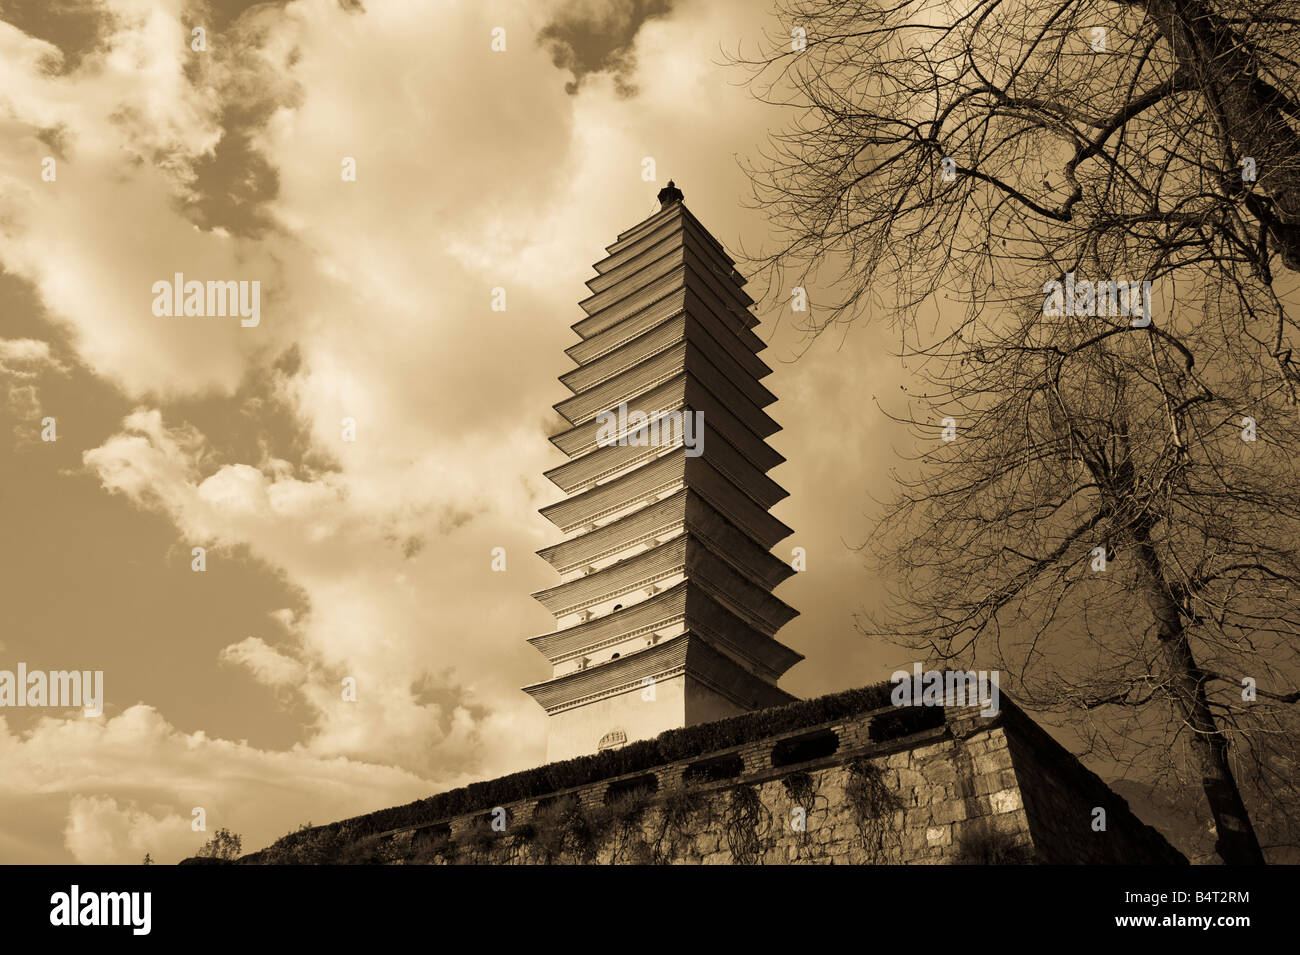 China, Yunnan Province, Dali, Old Town, Three Pagoda Park (built in the 9th century) - Stock Image